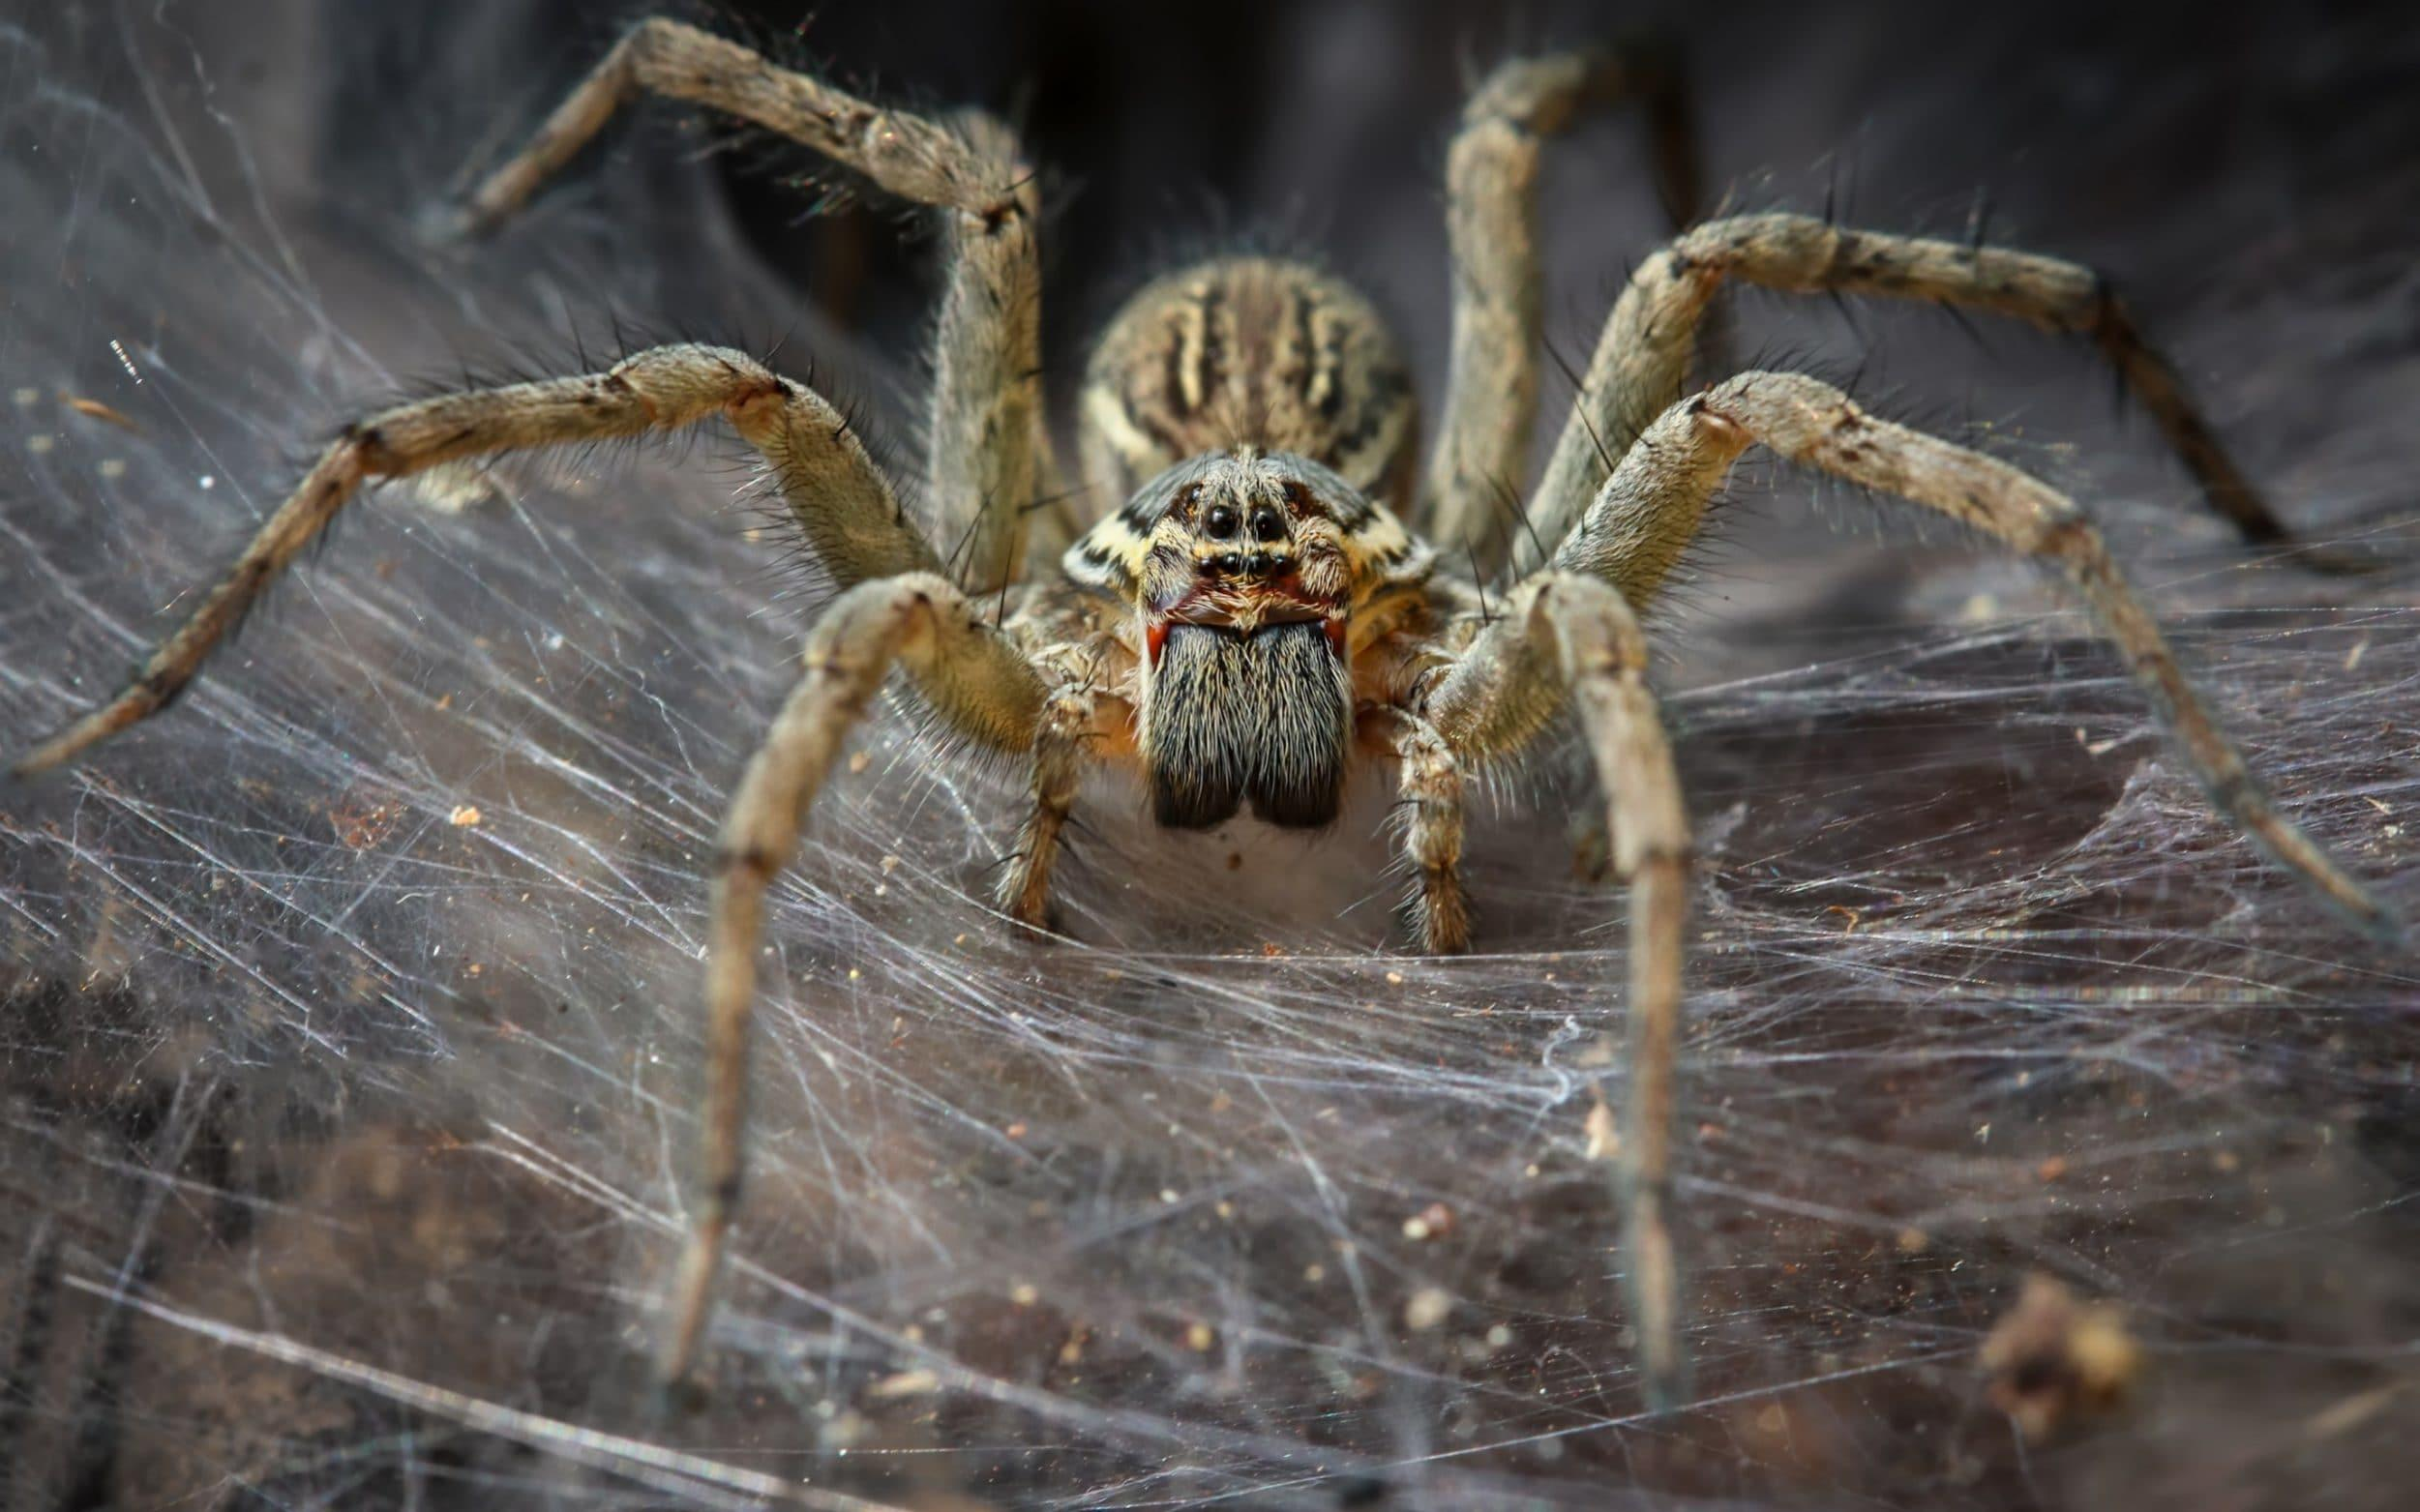 Australian man screaming at spider 'why don't you die?' triggers full police response